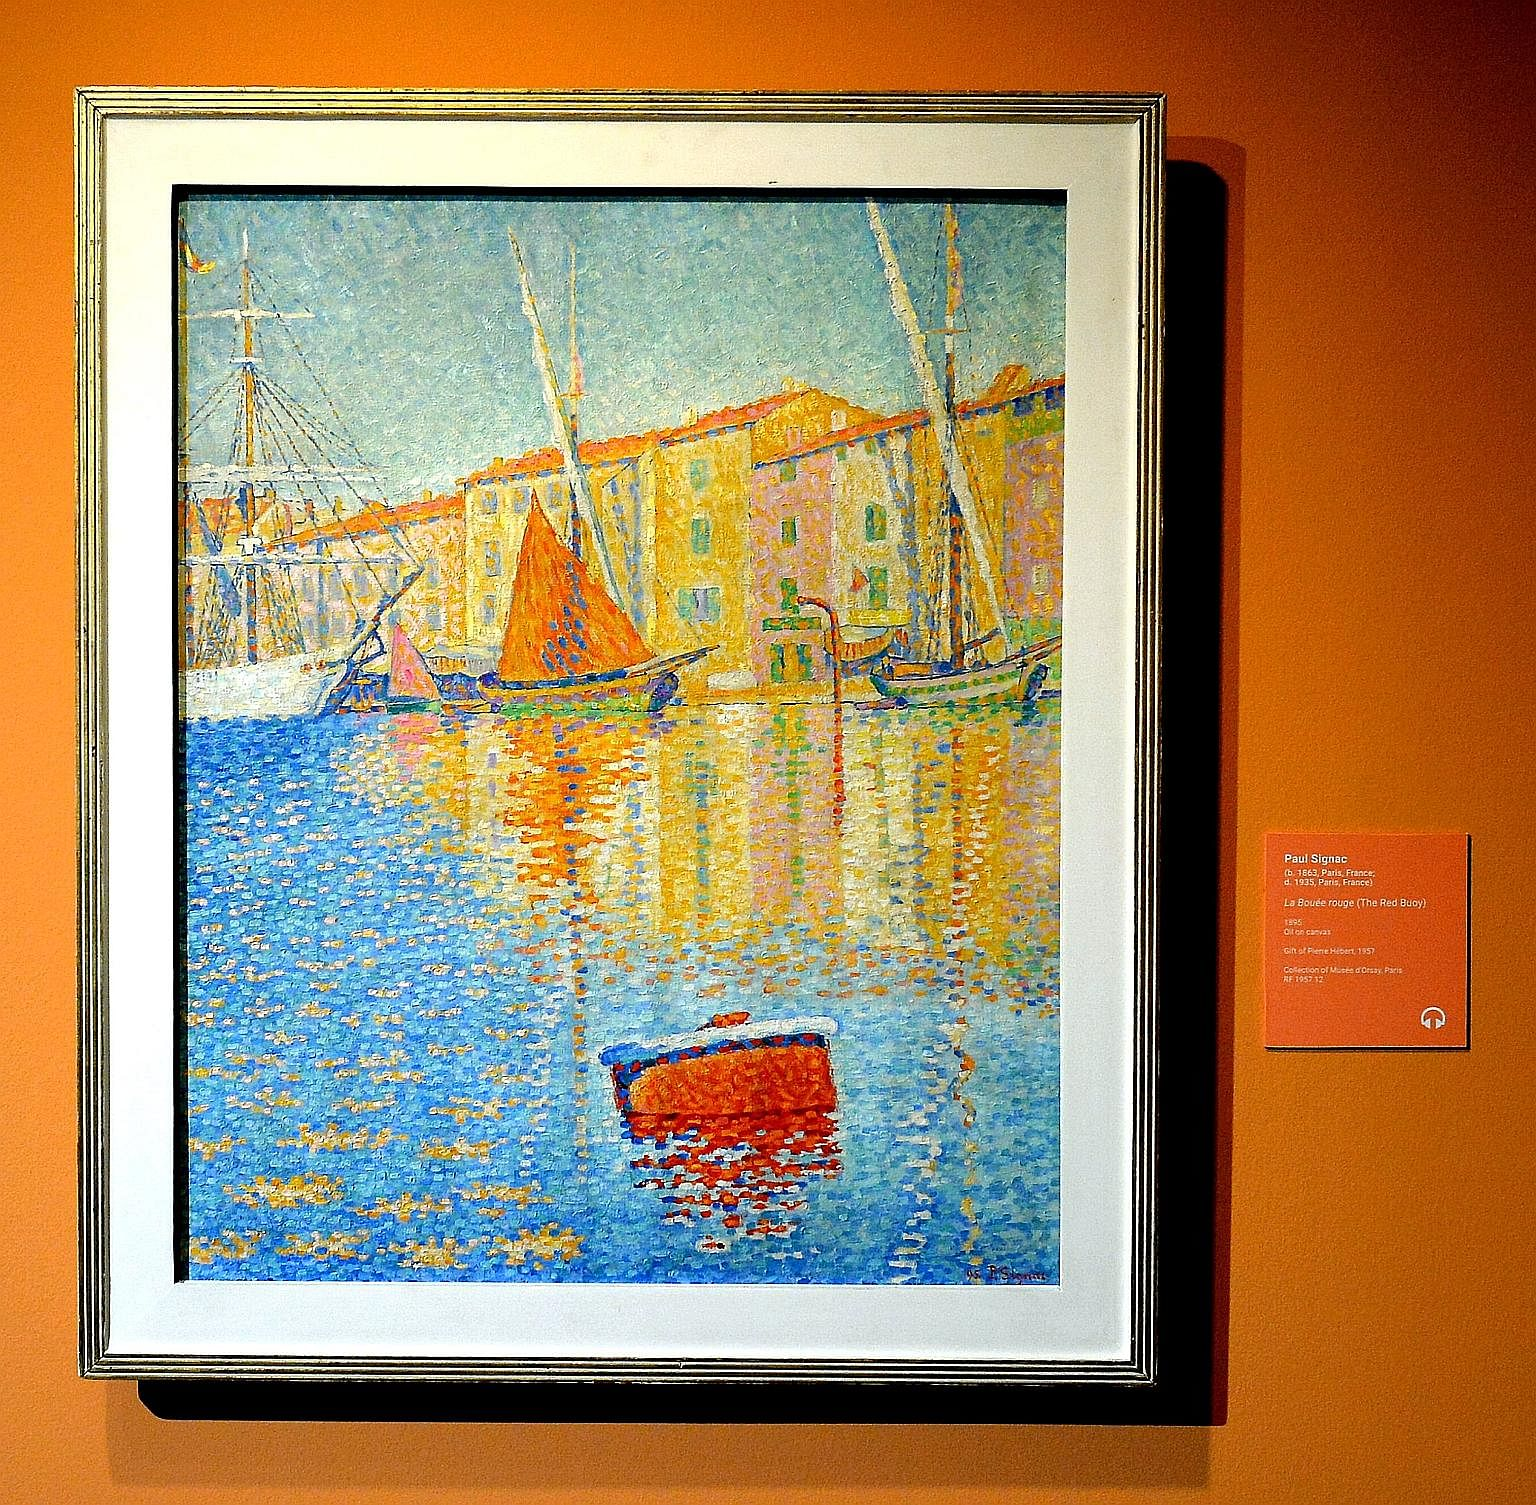 Among the artworks on display are Claude Monet's The Magpie (above) and Paul Signac's The Red Buoy (left).